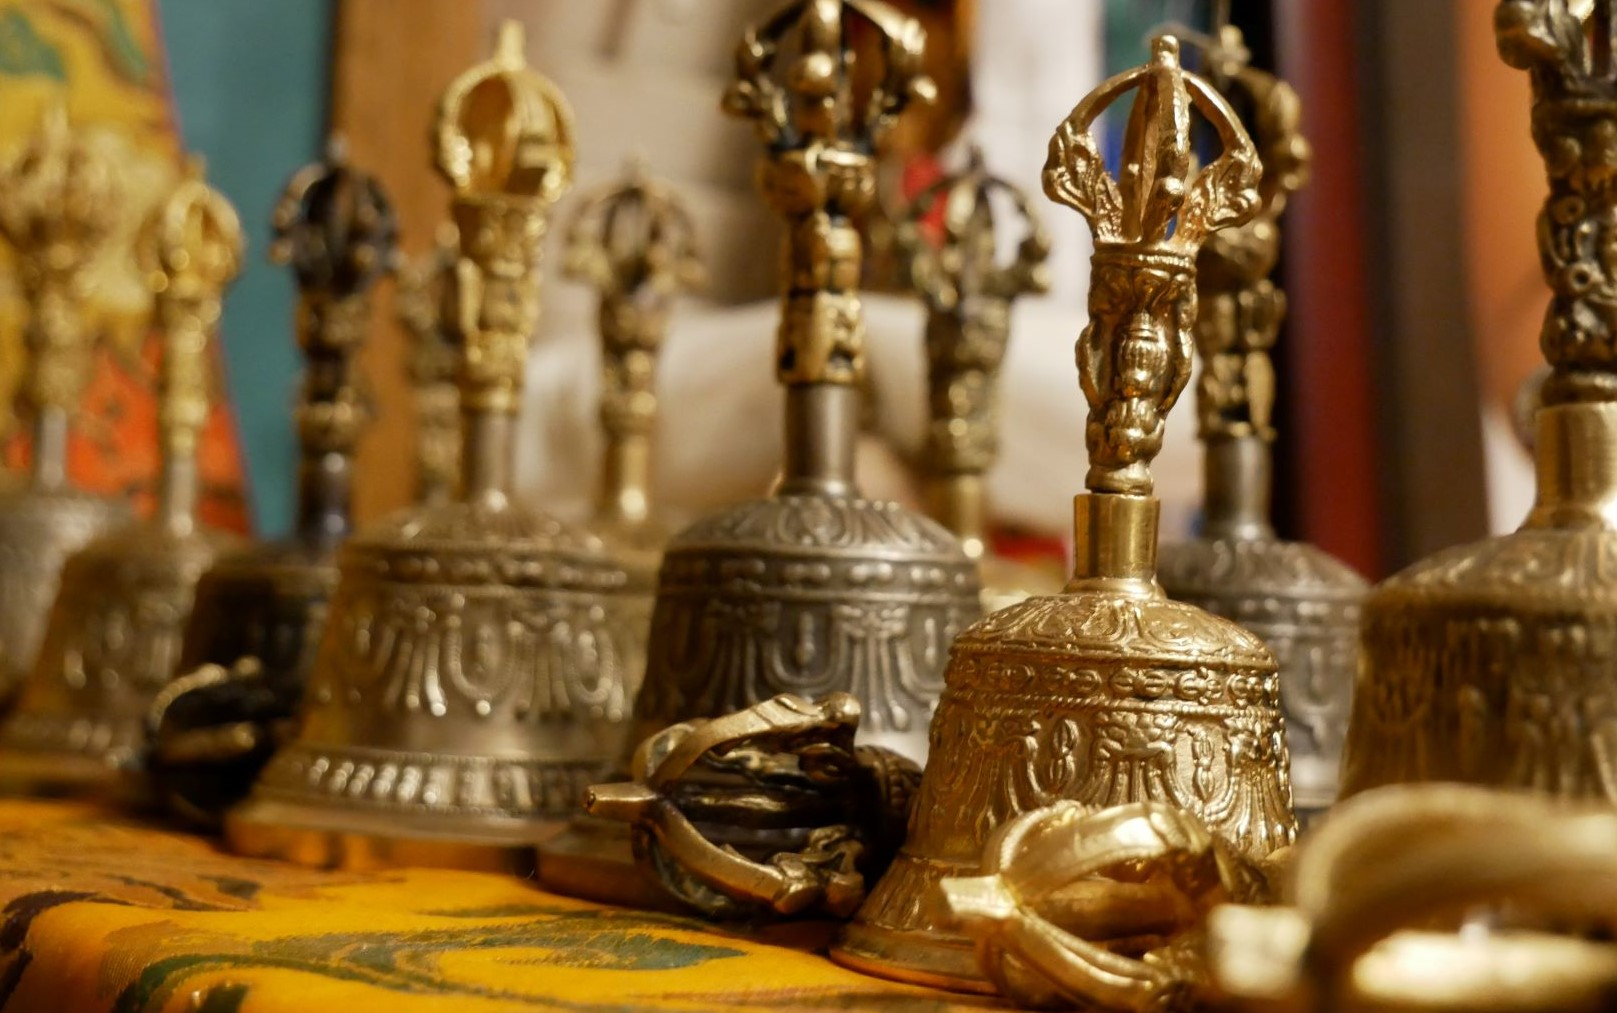 Some bells/vajra are available and can be borrowed for the prayer